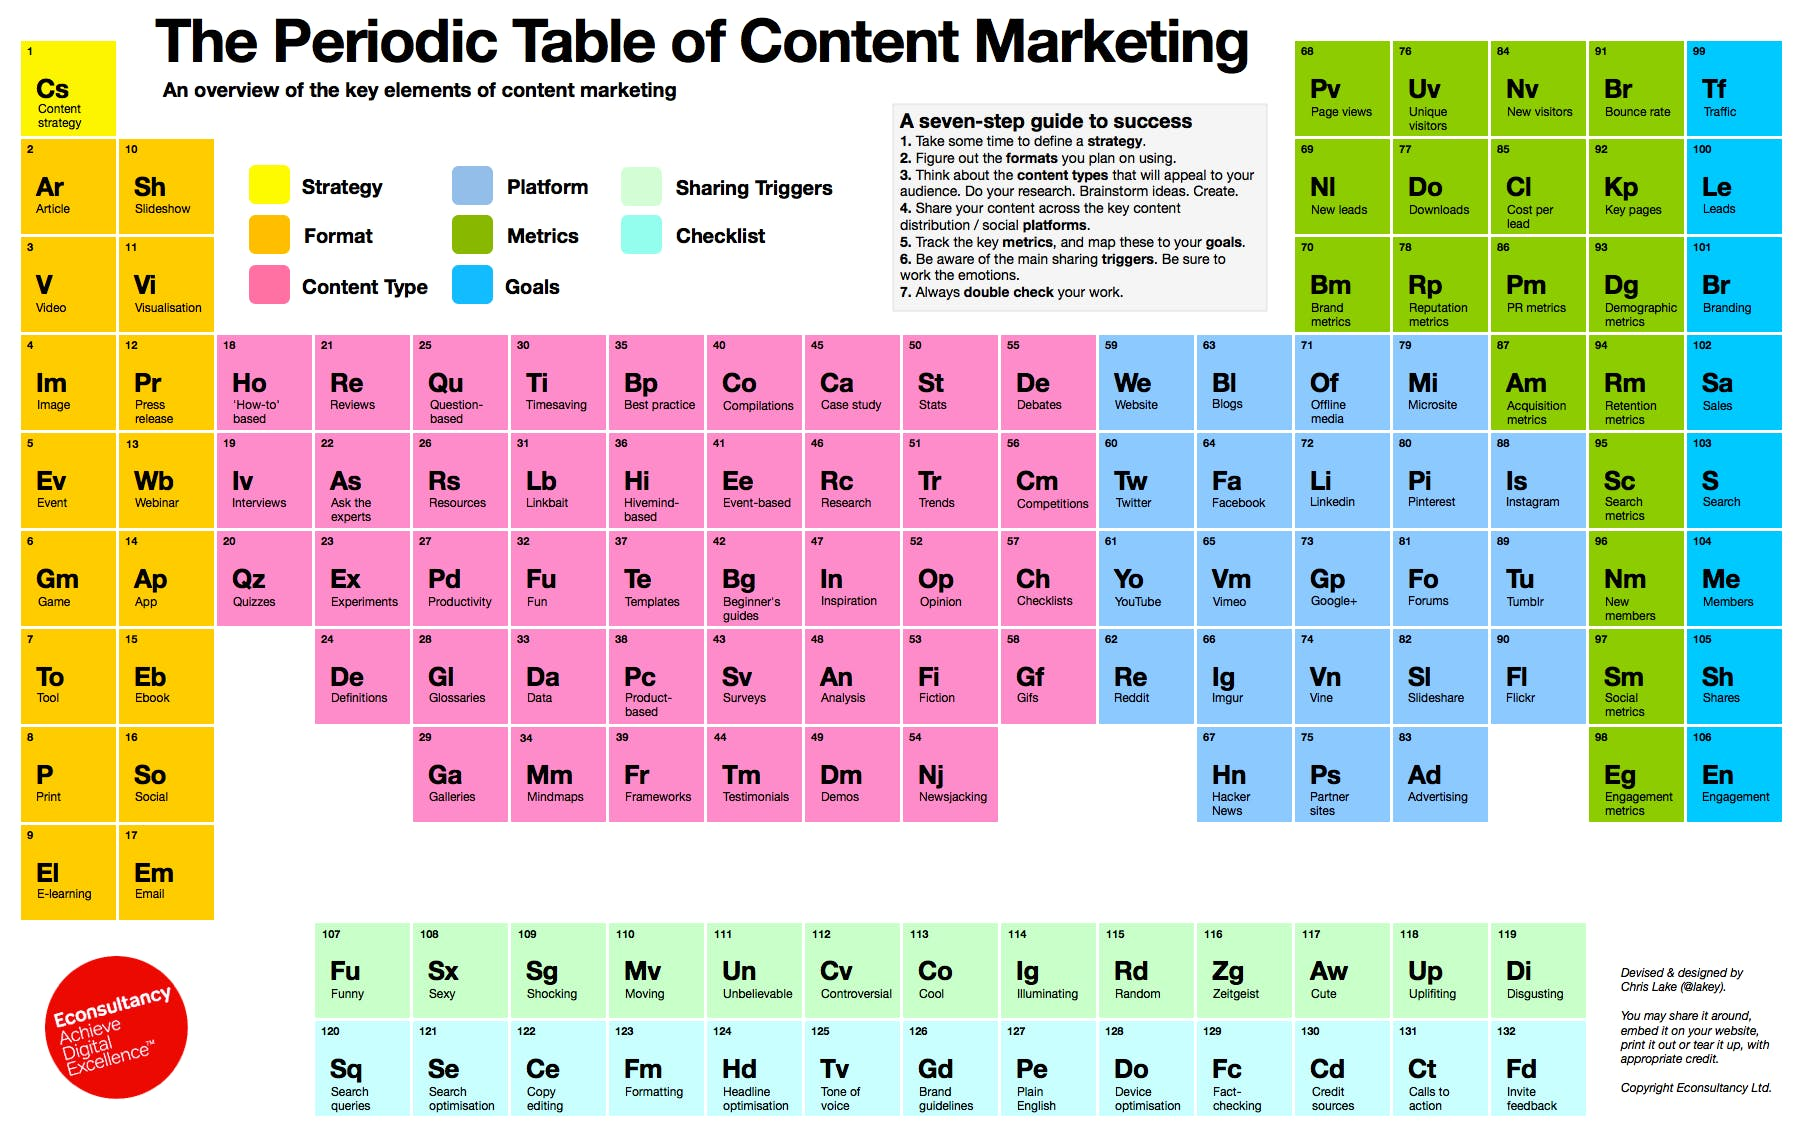 The Periodic Table of Content Marketing